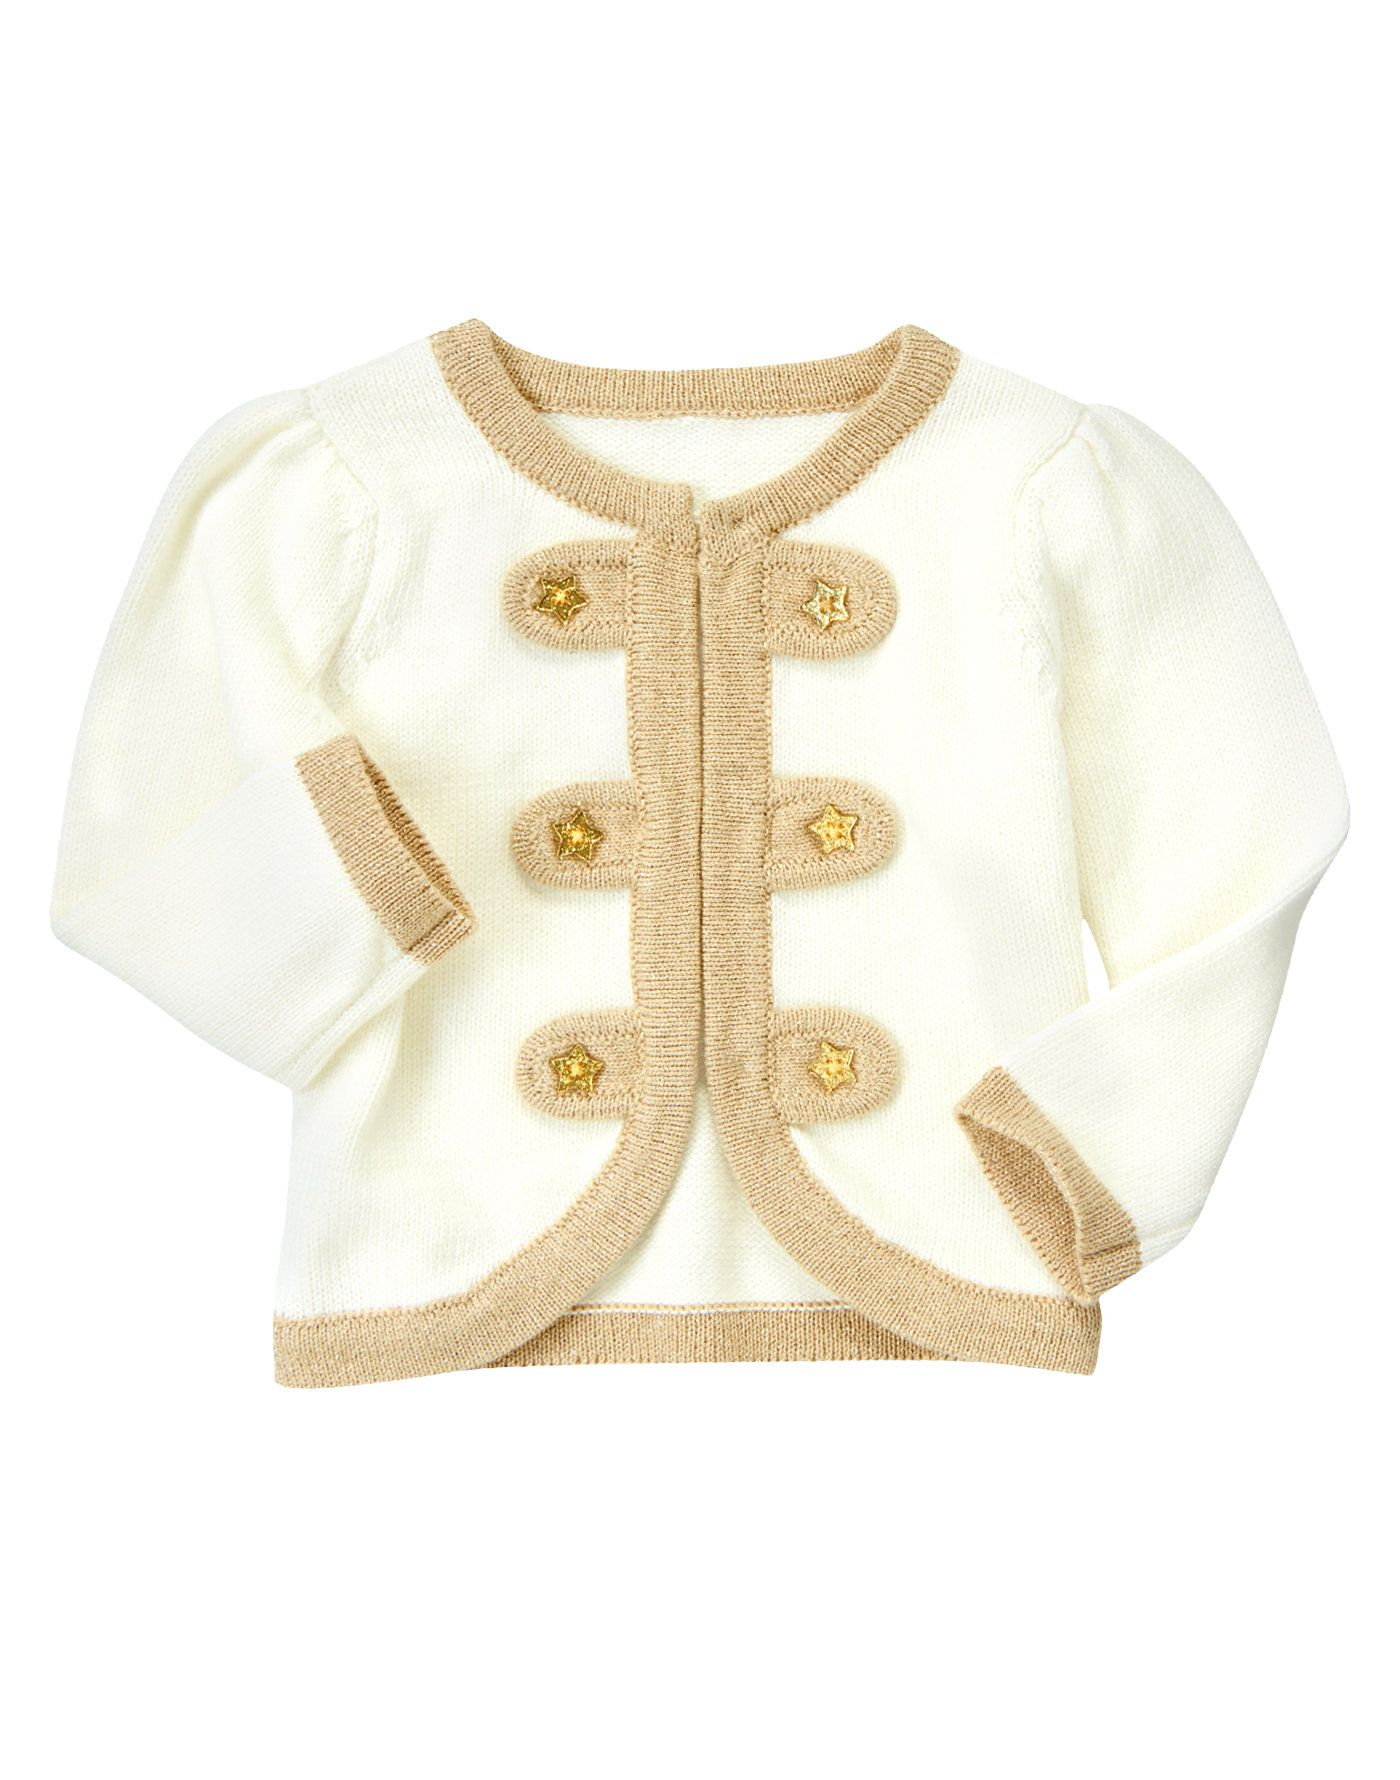 4c2df1f93 Big top style! Playful and soft sweater cardigan is fancied up with ...